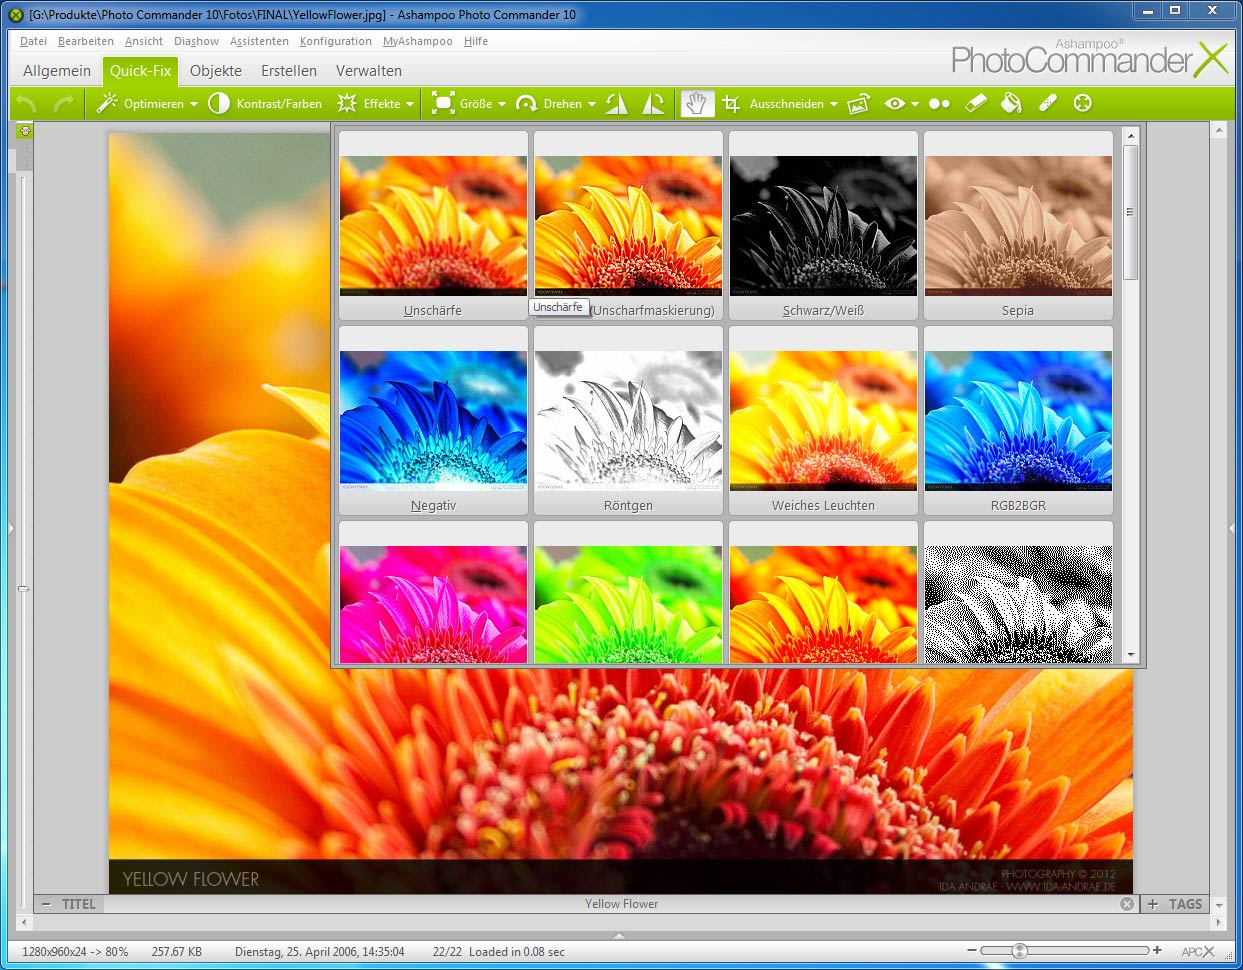 Ashampoo Photo Commander 10.2.1 Screenshot